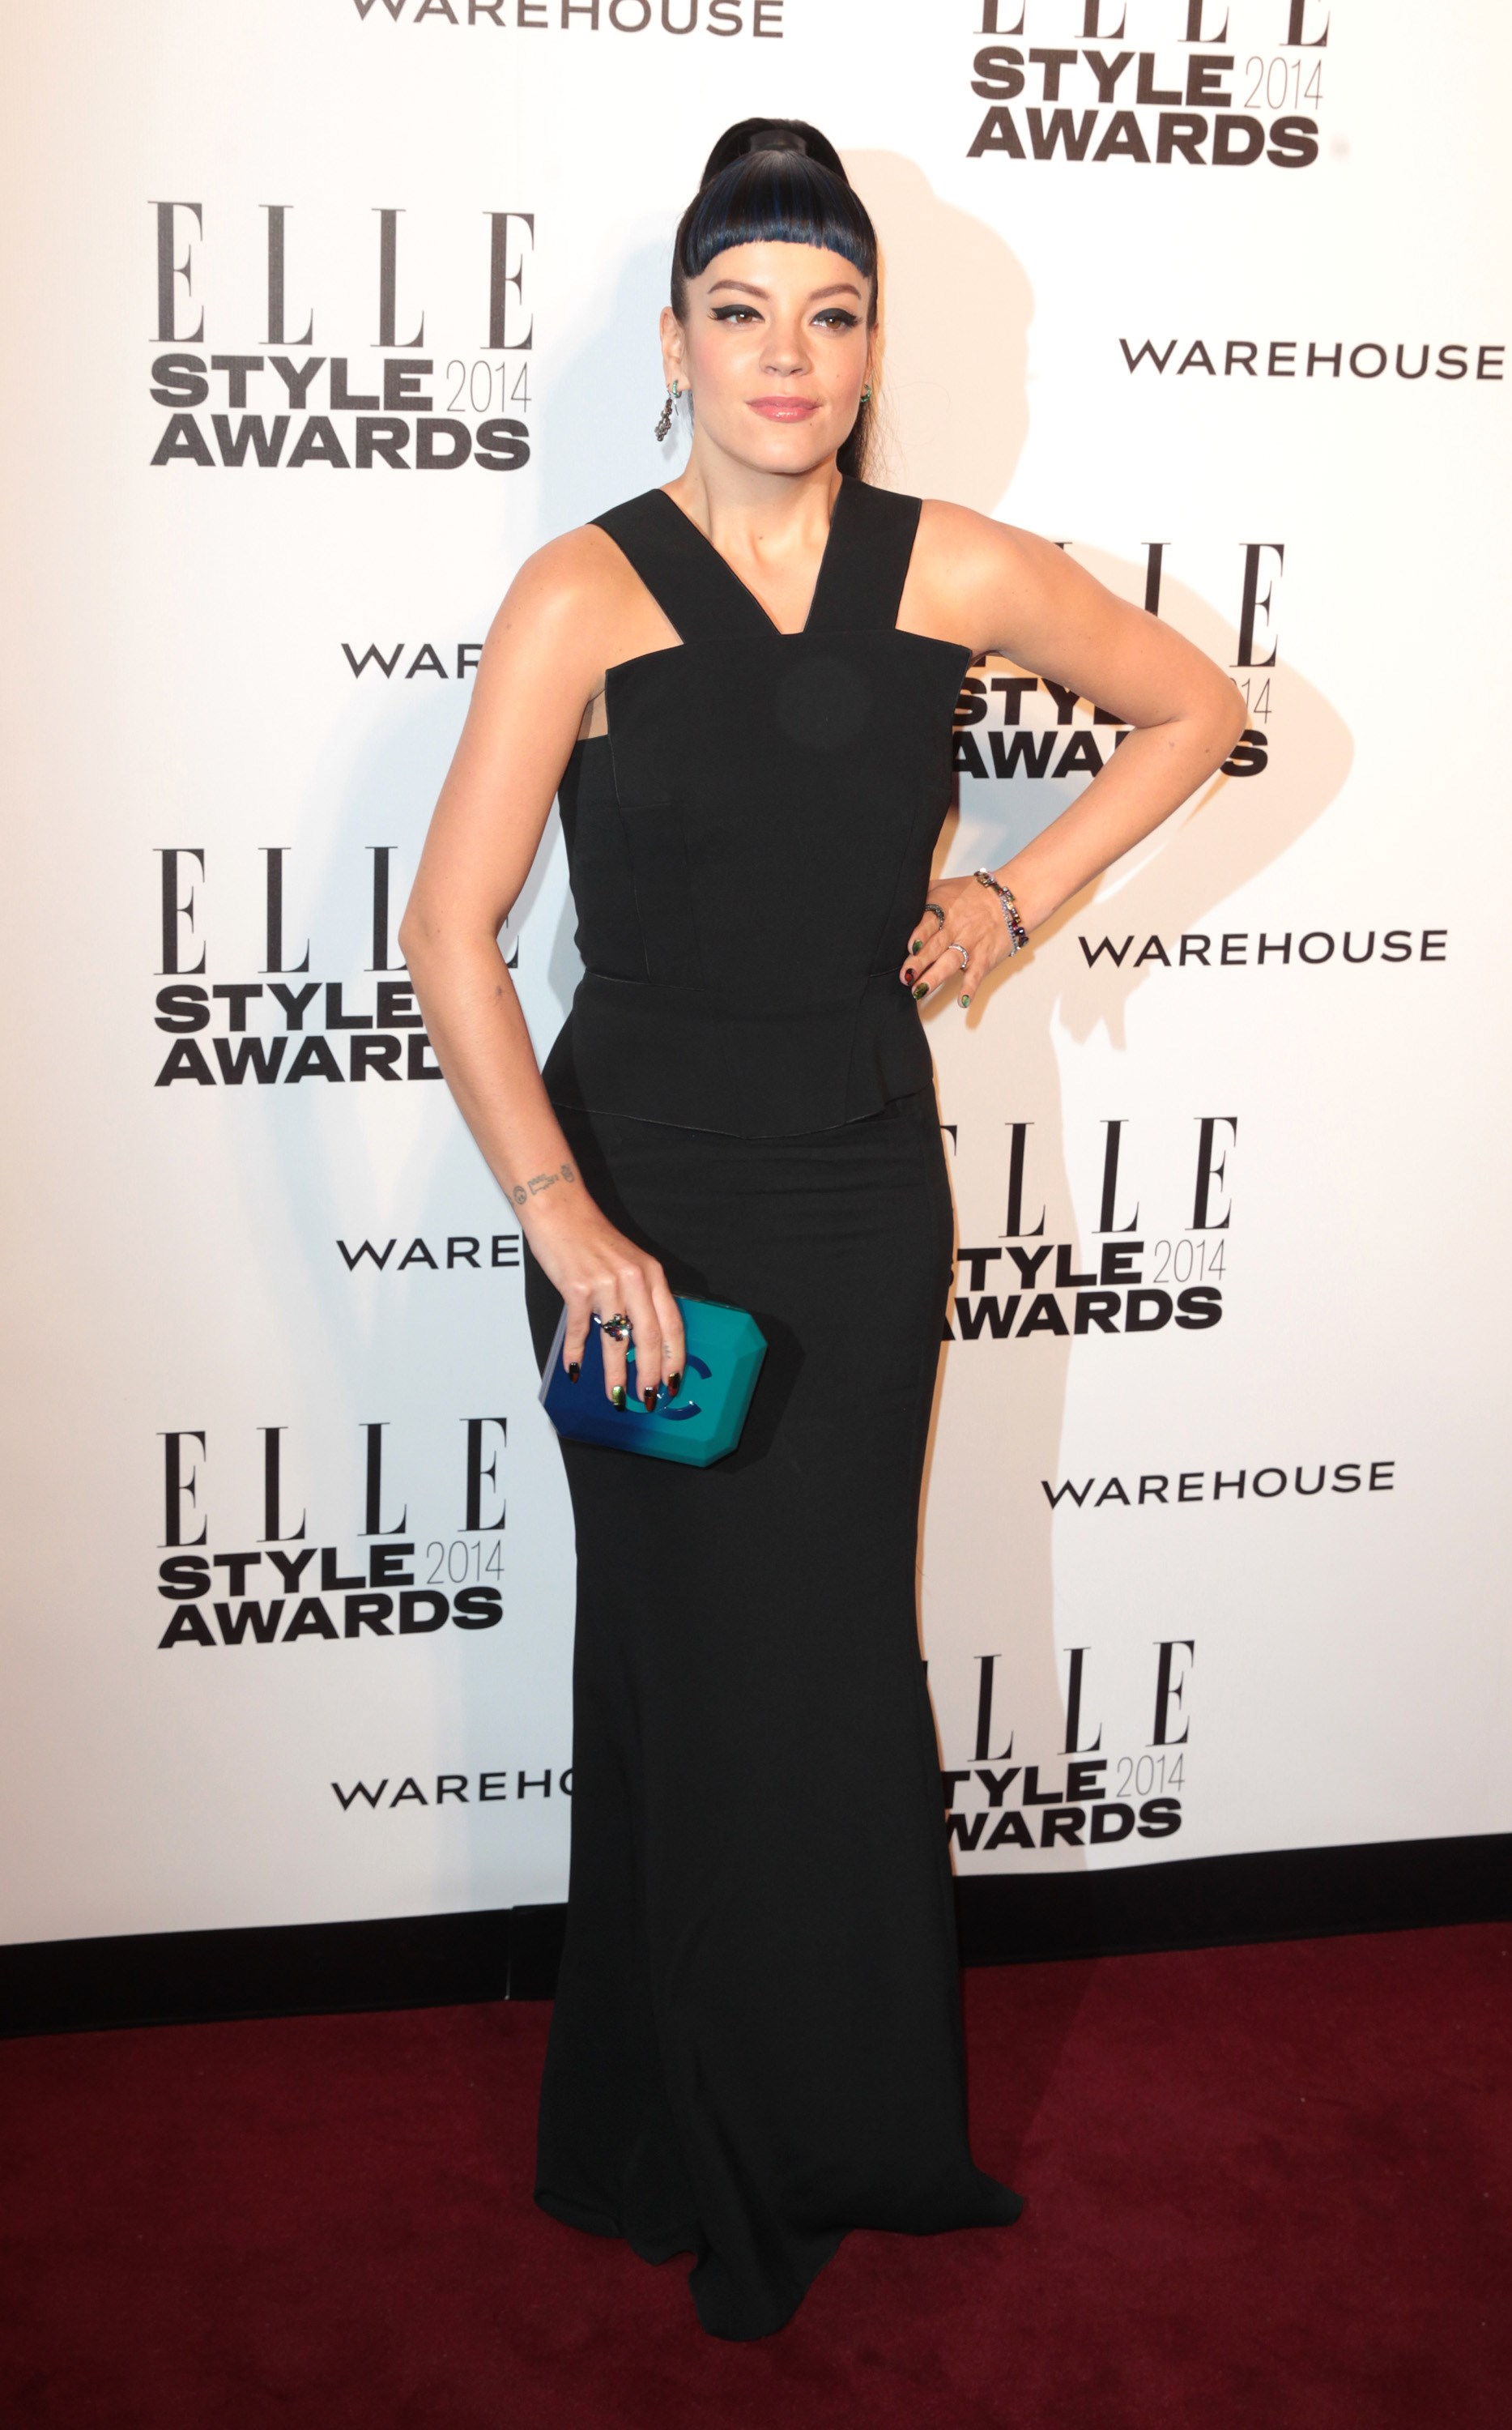 Lily Allen at the 2014 ELLE Style Awards